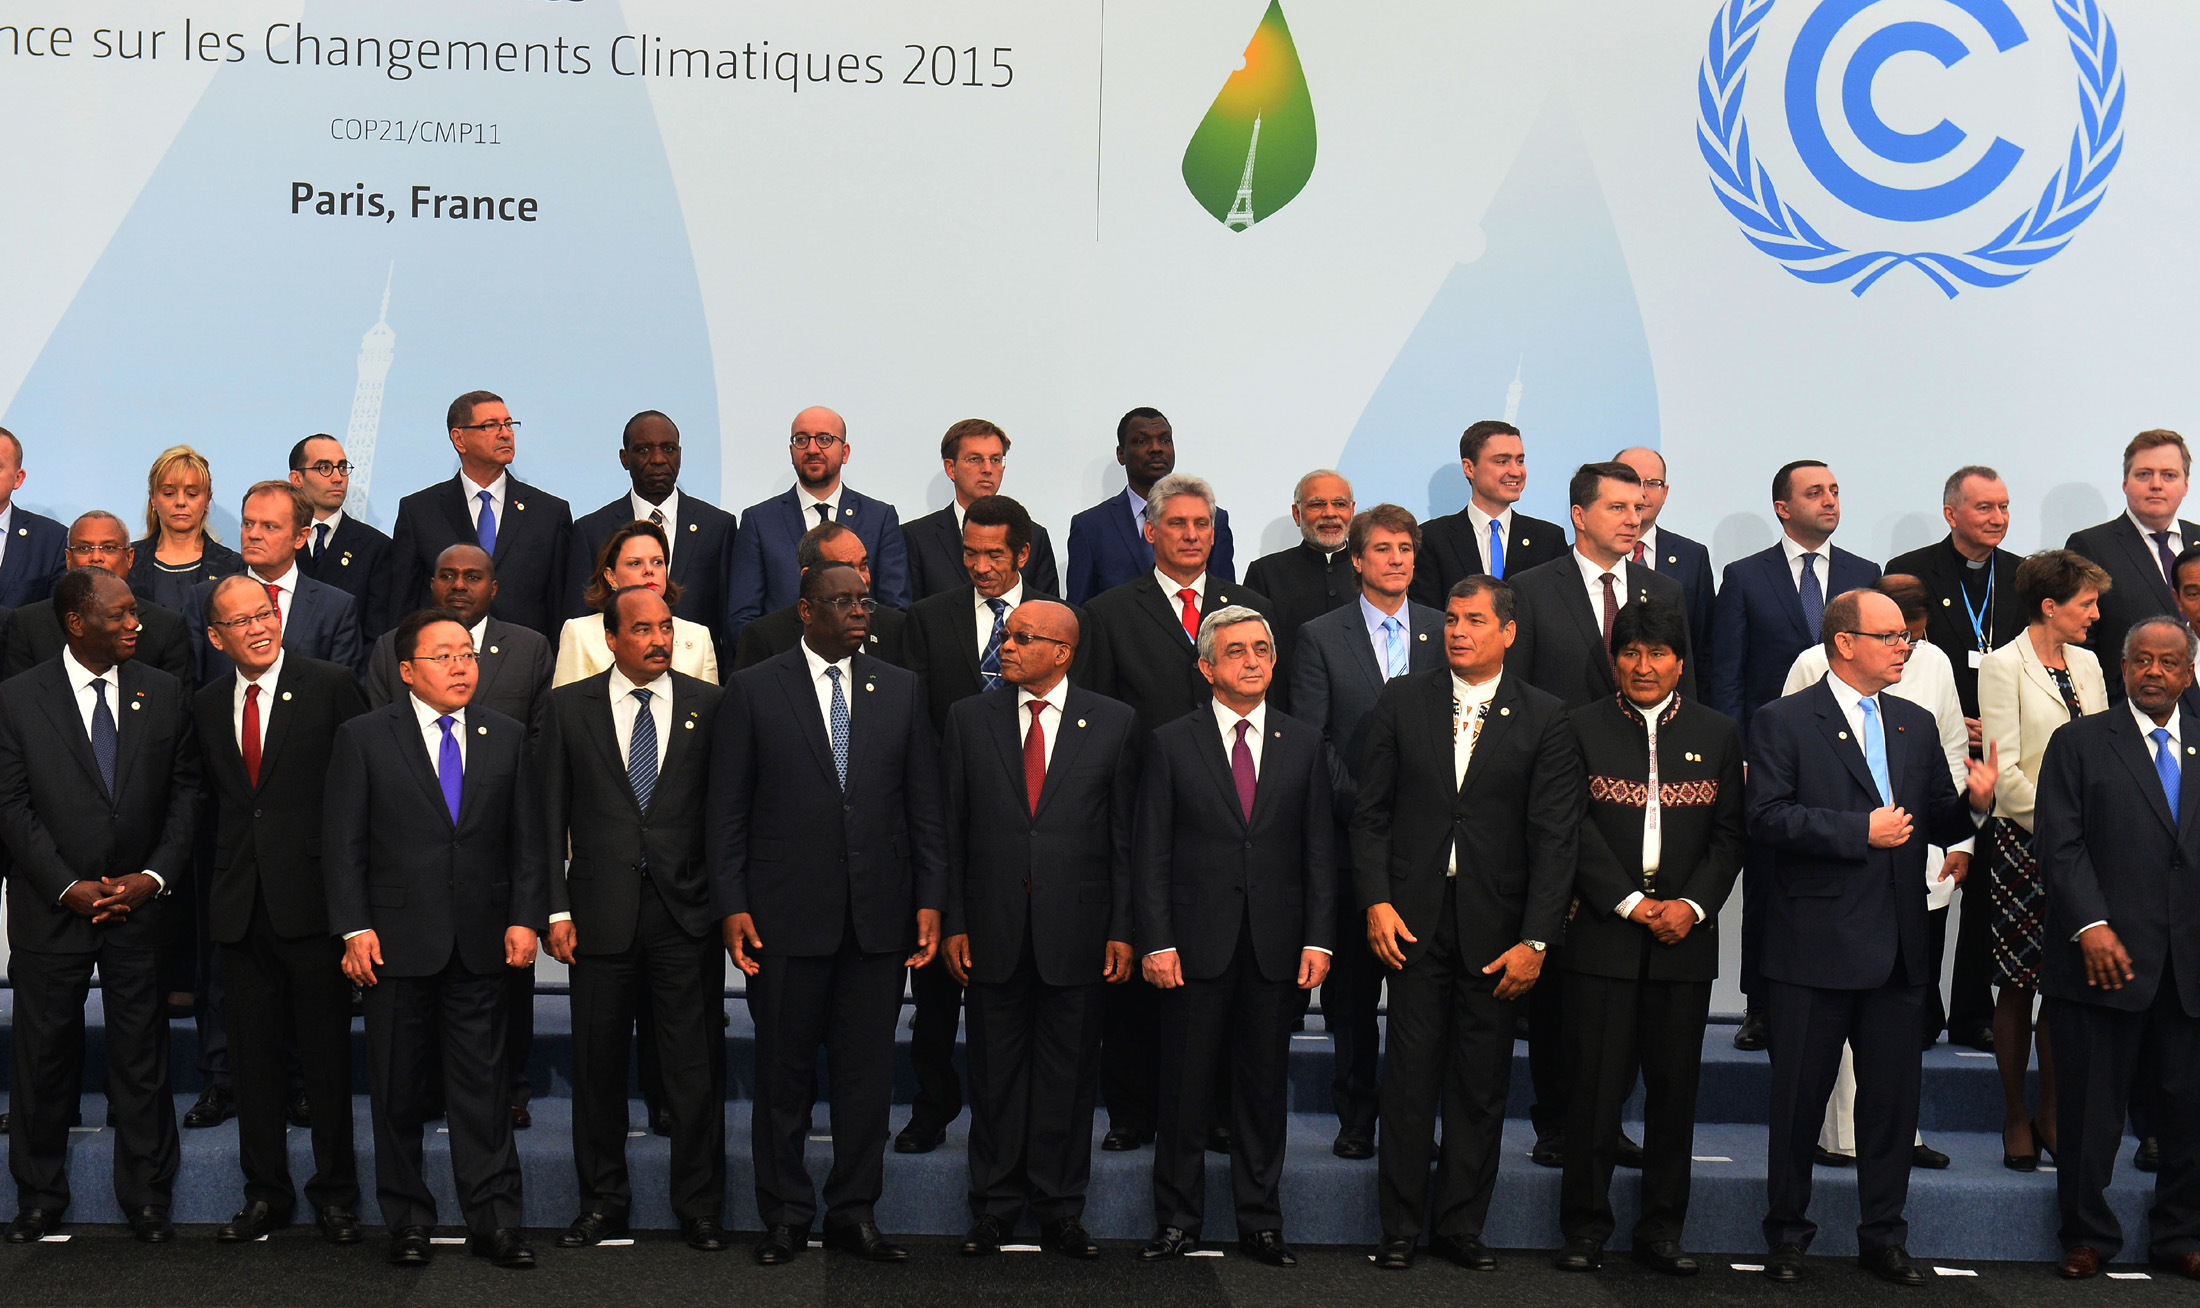 World leaders attending the United Nations Climate Change Conference, also known as COP21, in Paris in 2015 ( Image )